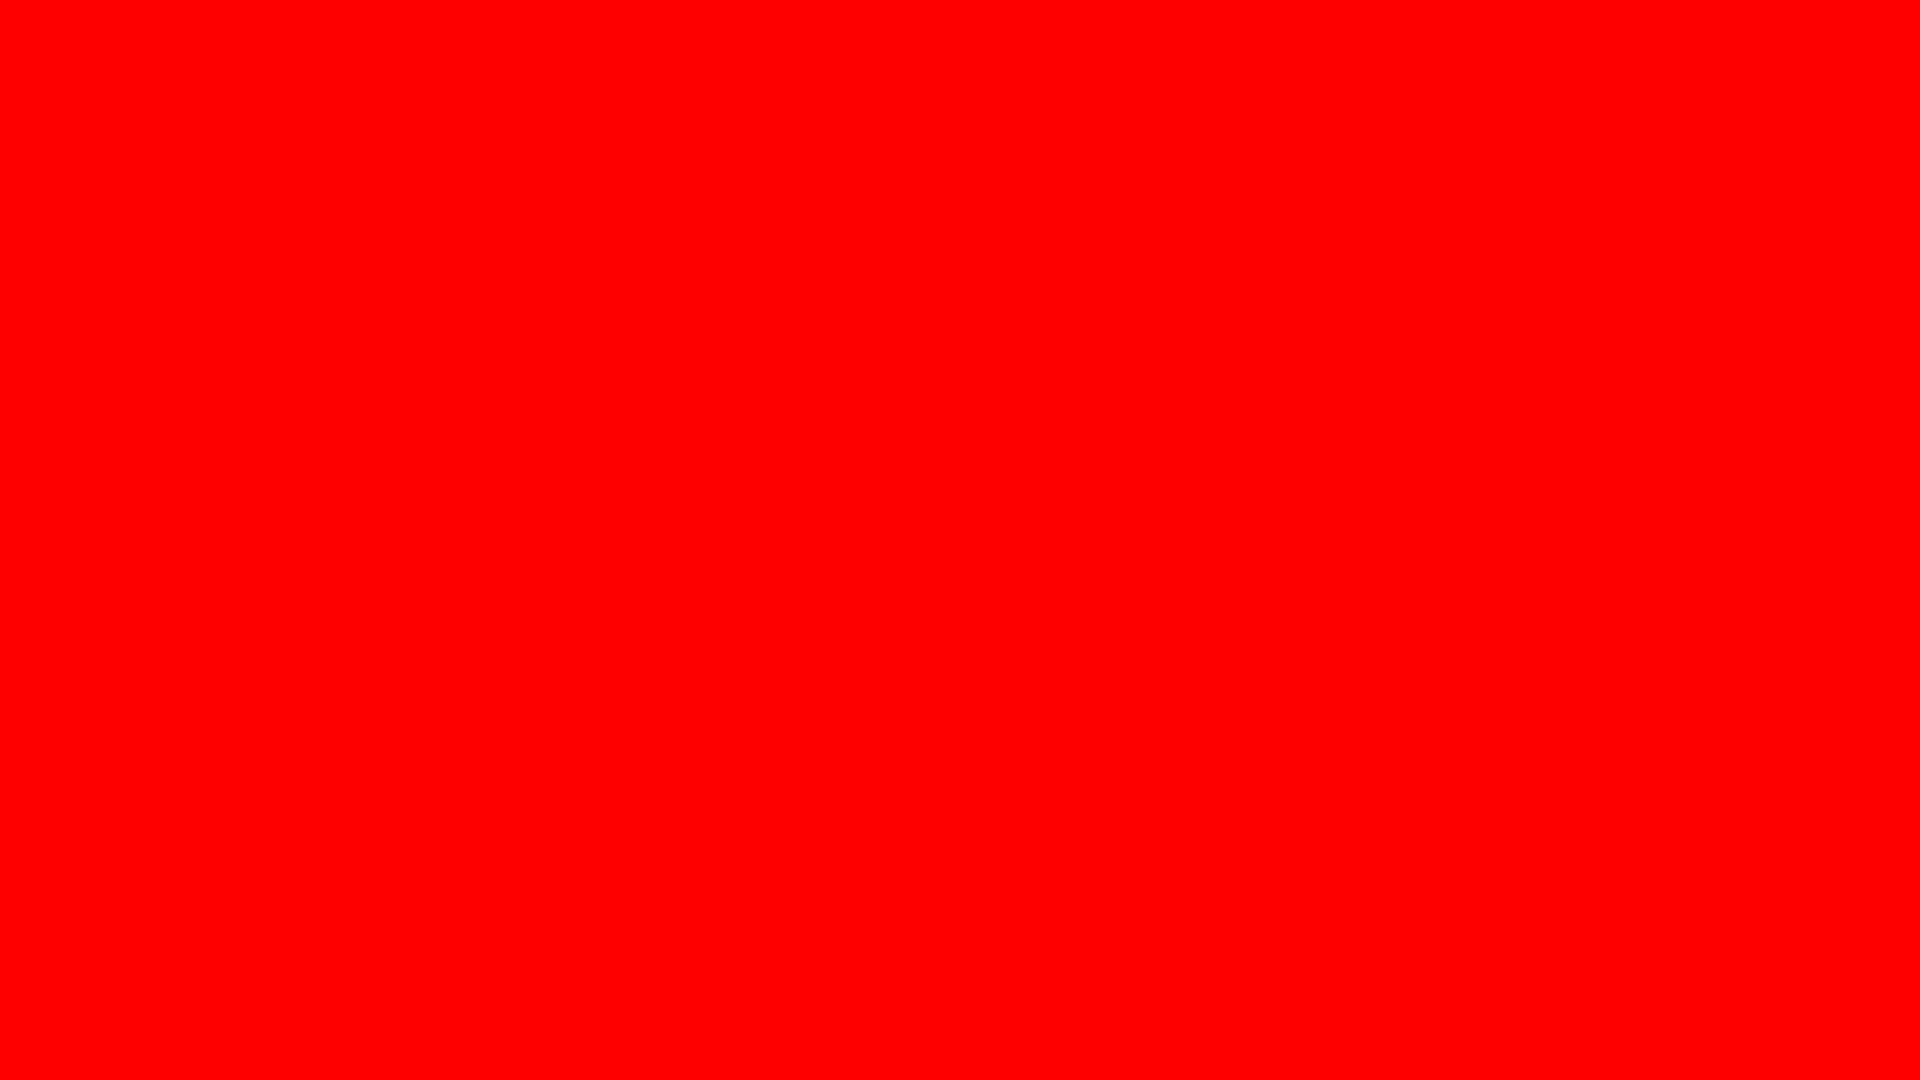 1920x1080 Red Solid Color Background